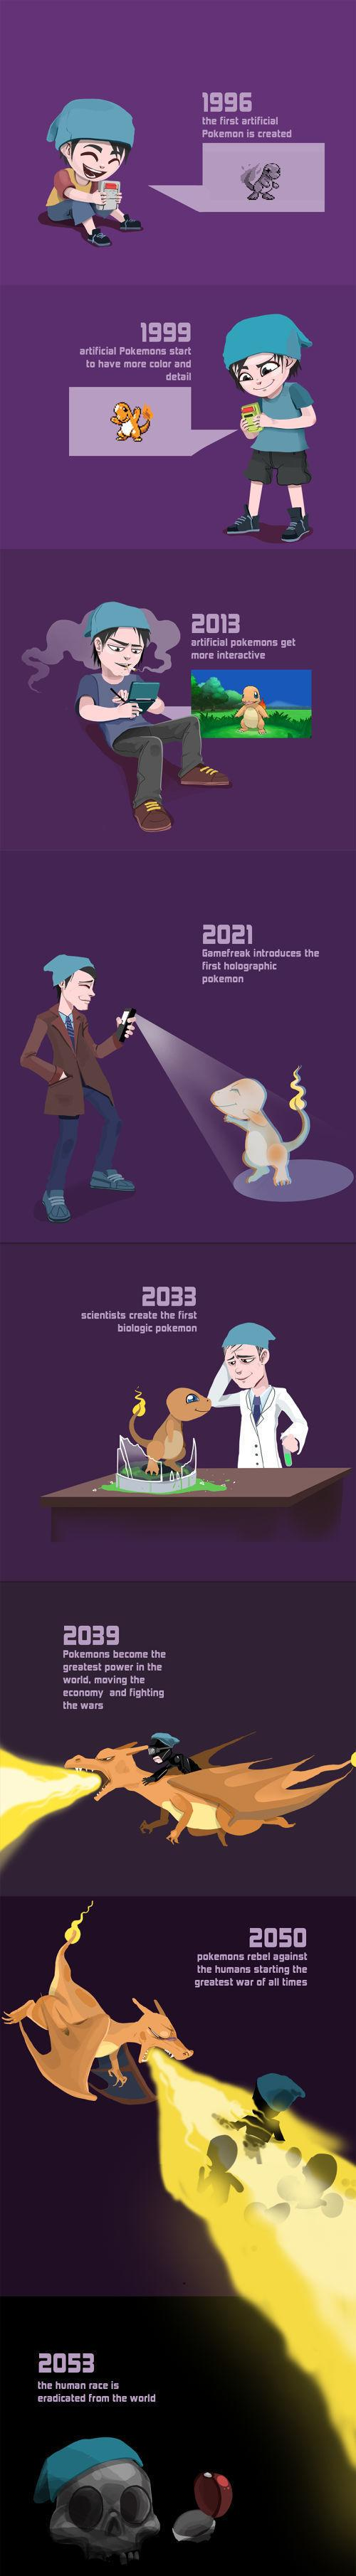 I come from the future. - Imgur